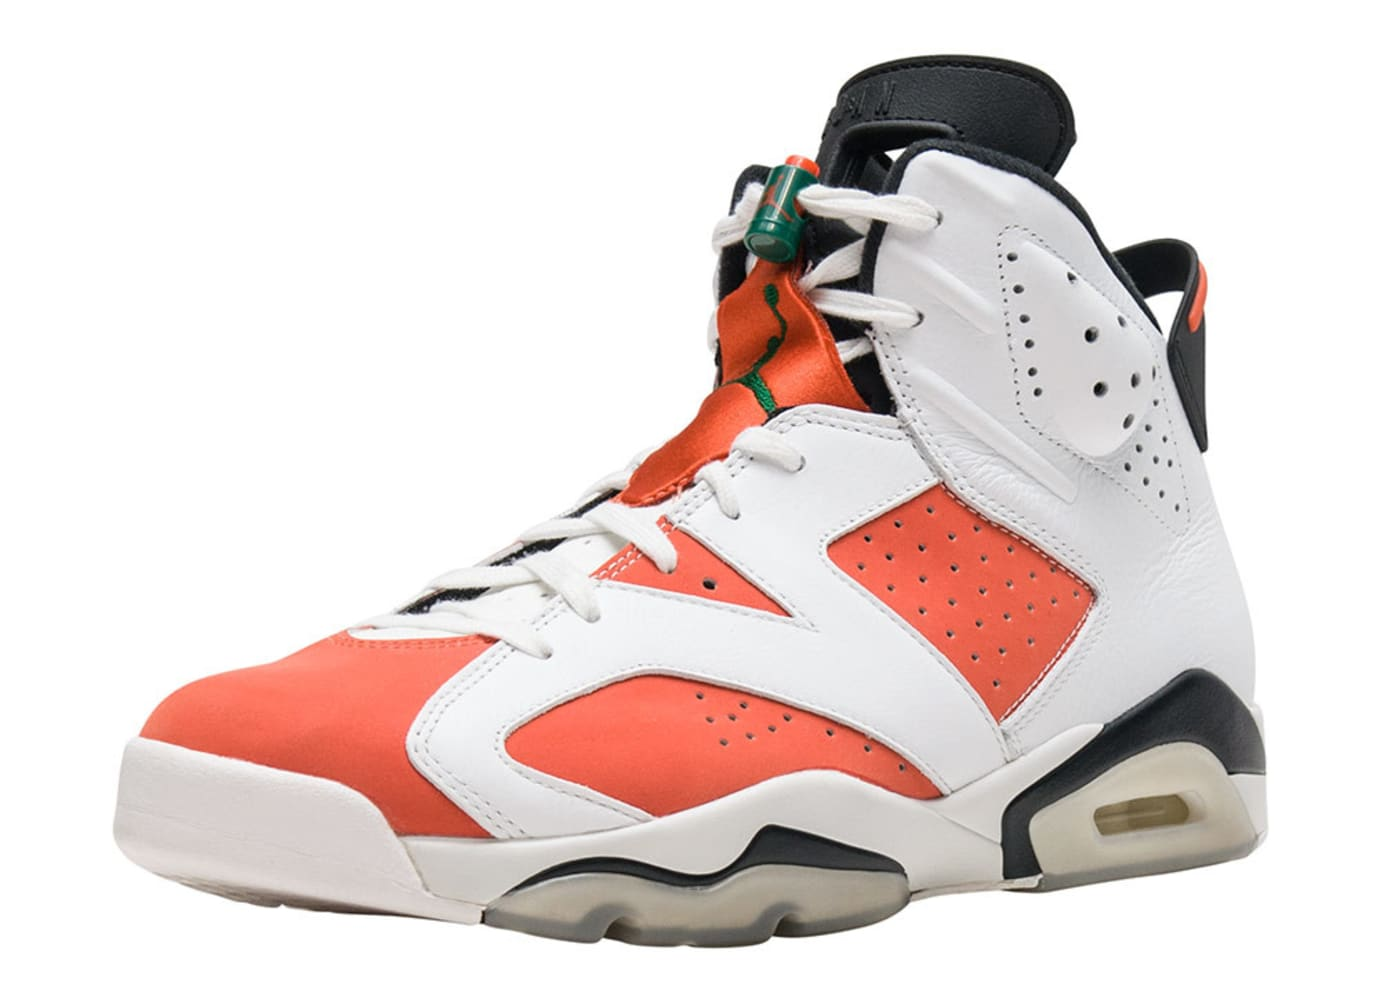 cheap for discount c1351 7fdfc Gatorade Air Jordan 6 Like Mike 384664-145 | Sole Collector